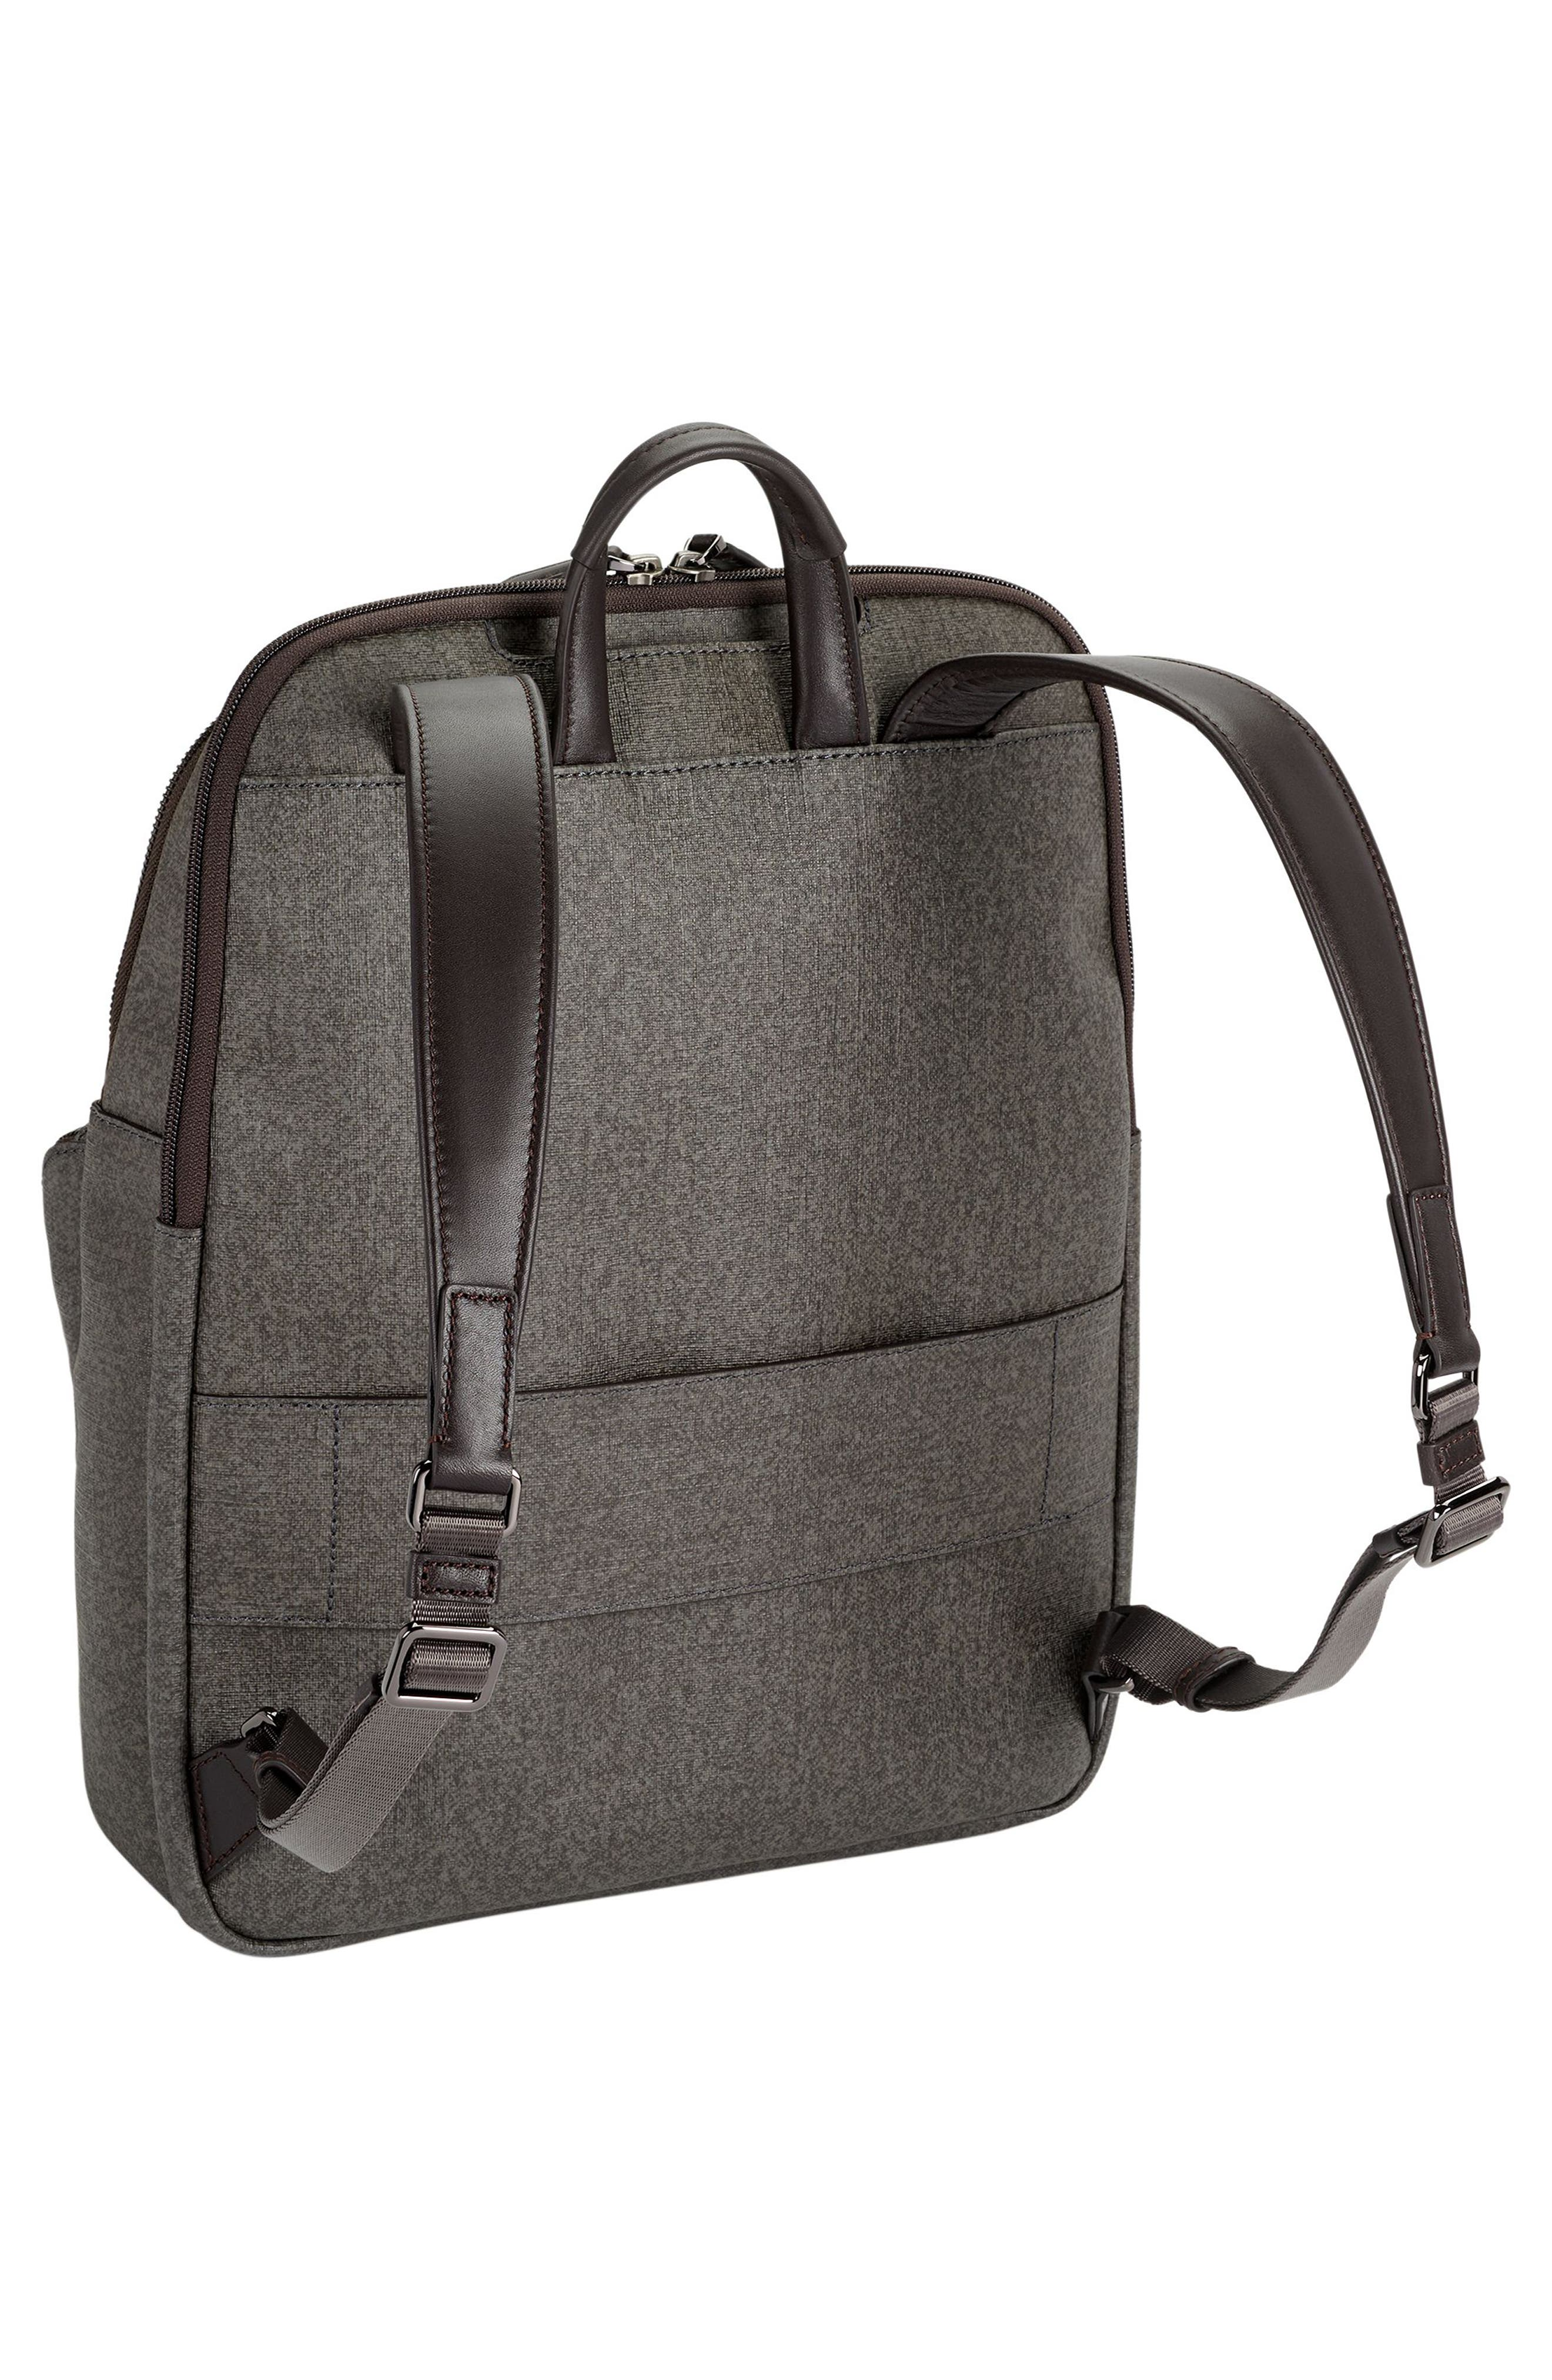 Sinclair - Hanne Coated Canvas Laptop Backpack,                             Alternate thumbnail 3, color,                             Earl Grey